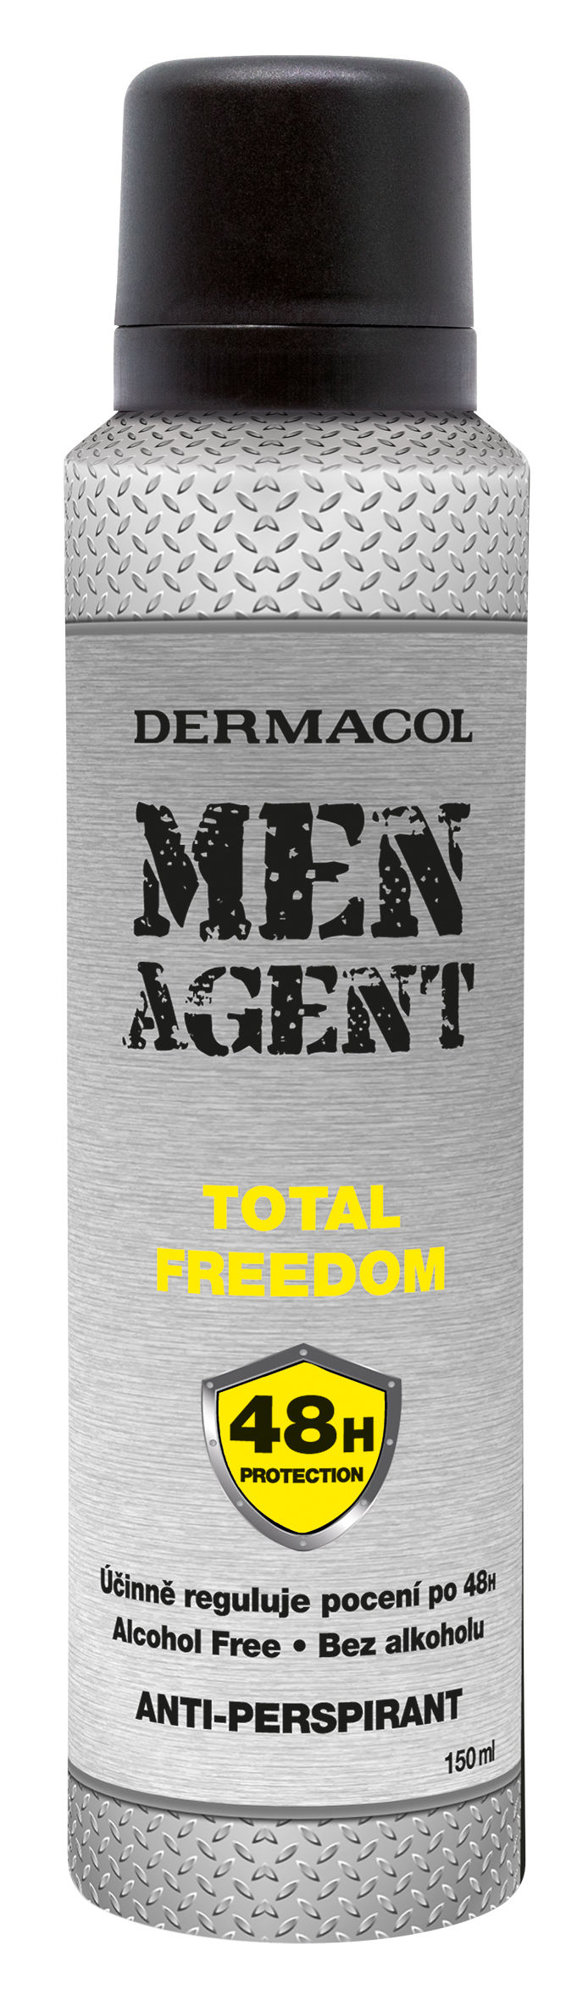 Dermacol Men Agent Total Freedom (Antiperspirant, M, 150 ml)